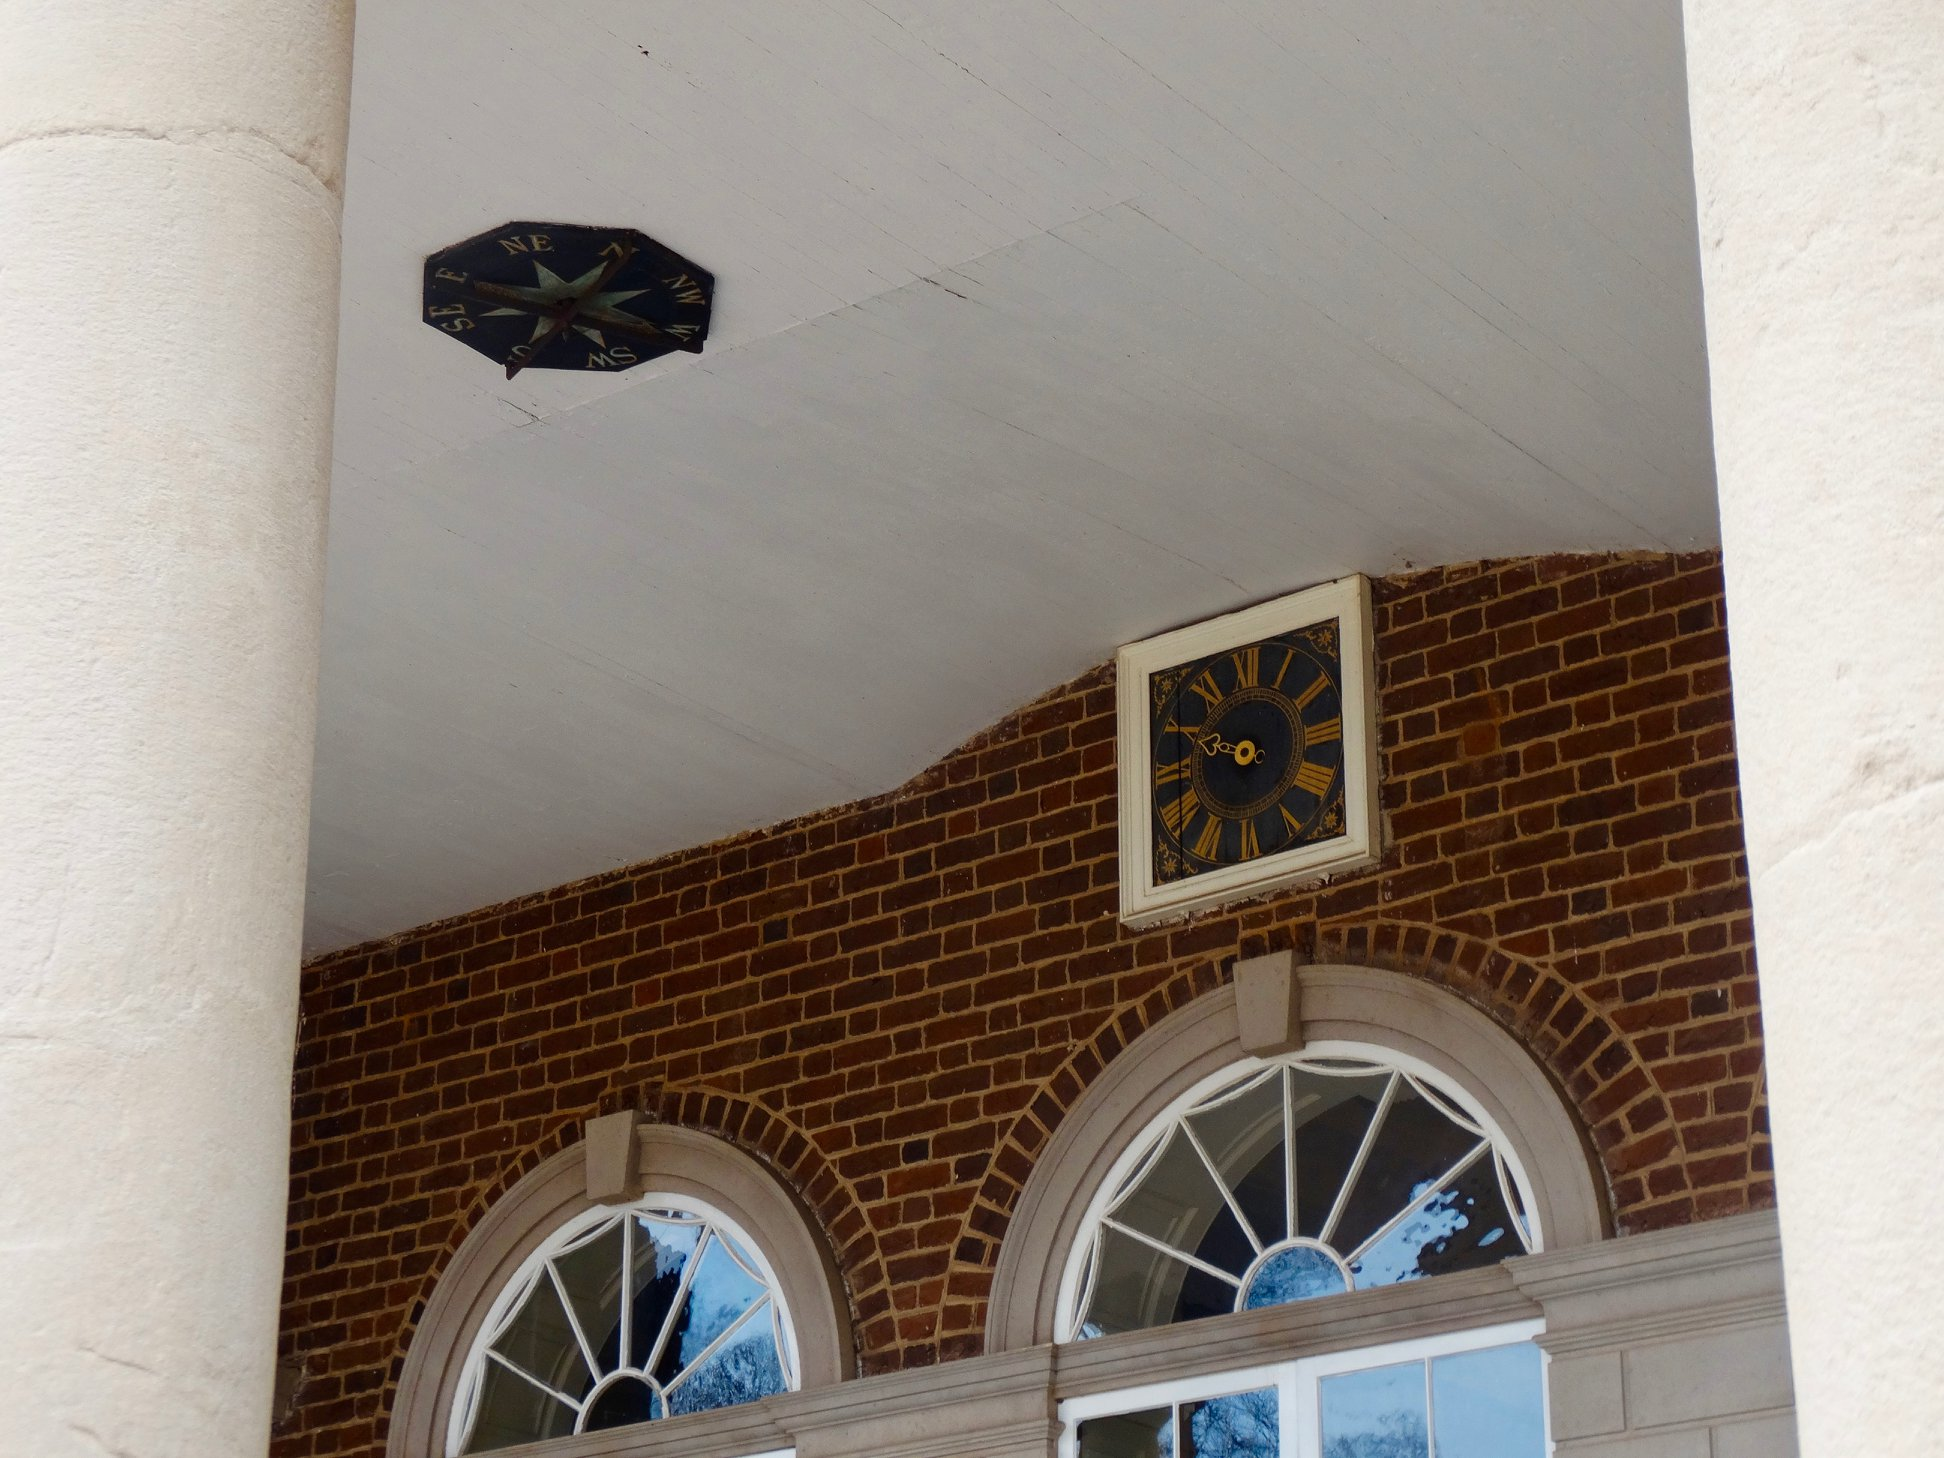 Jefferson's clock at the entry of Monticello (designed by Jefferson and built in 1792) has only one hand because, according to Jefferson, one hand was all that was needed when it came to laboring on a farm.